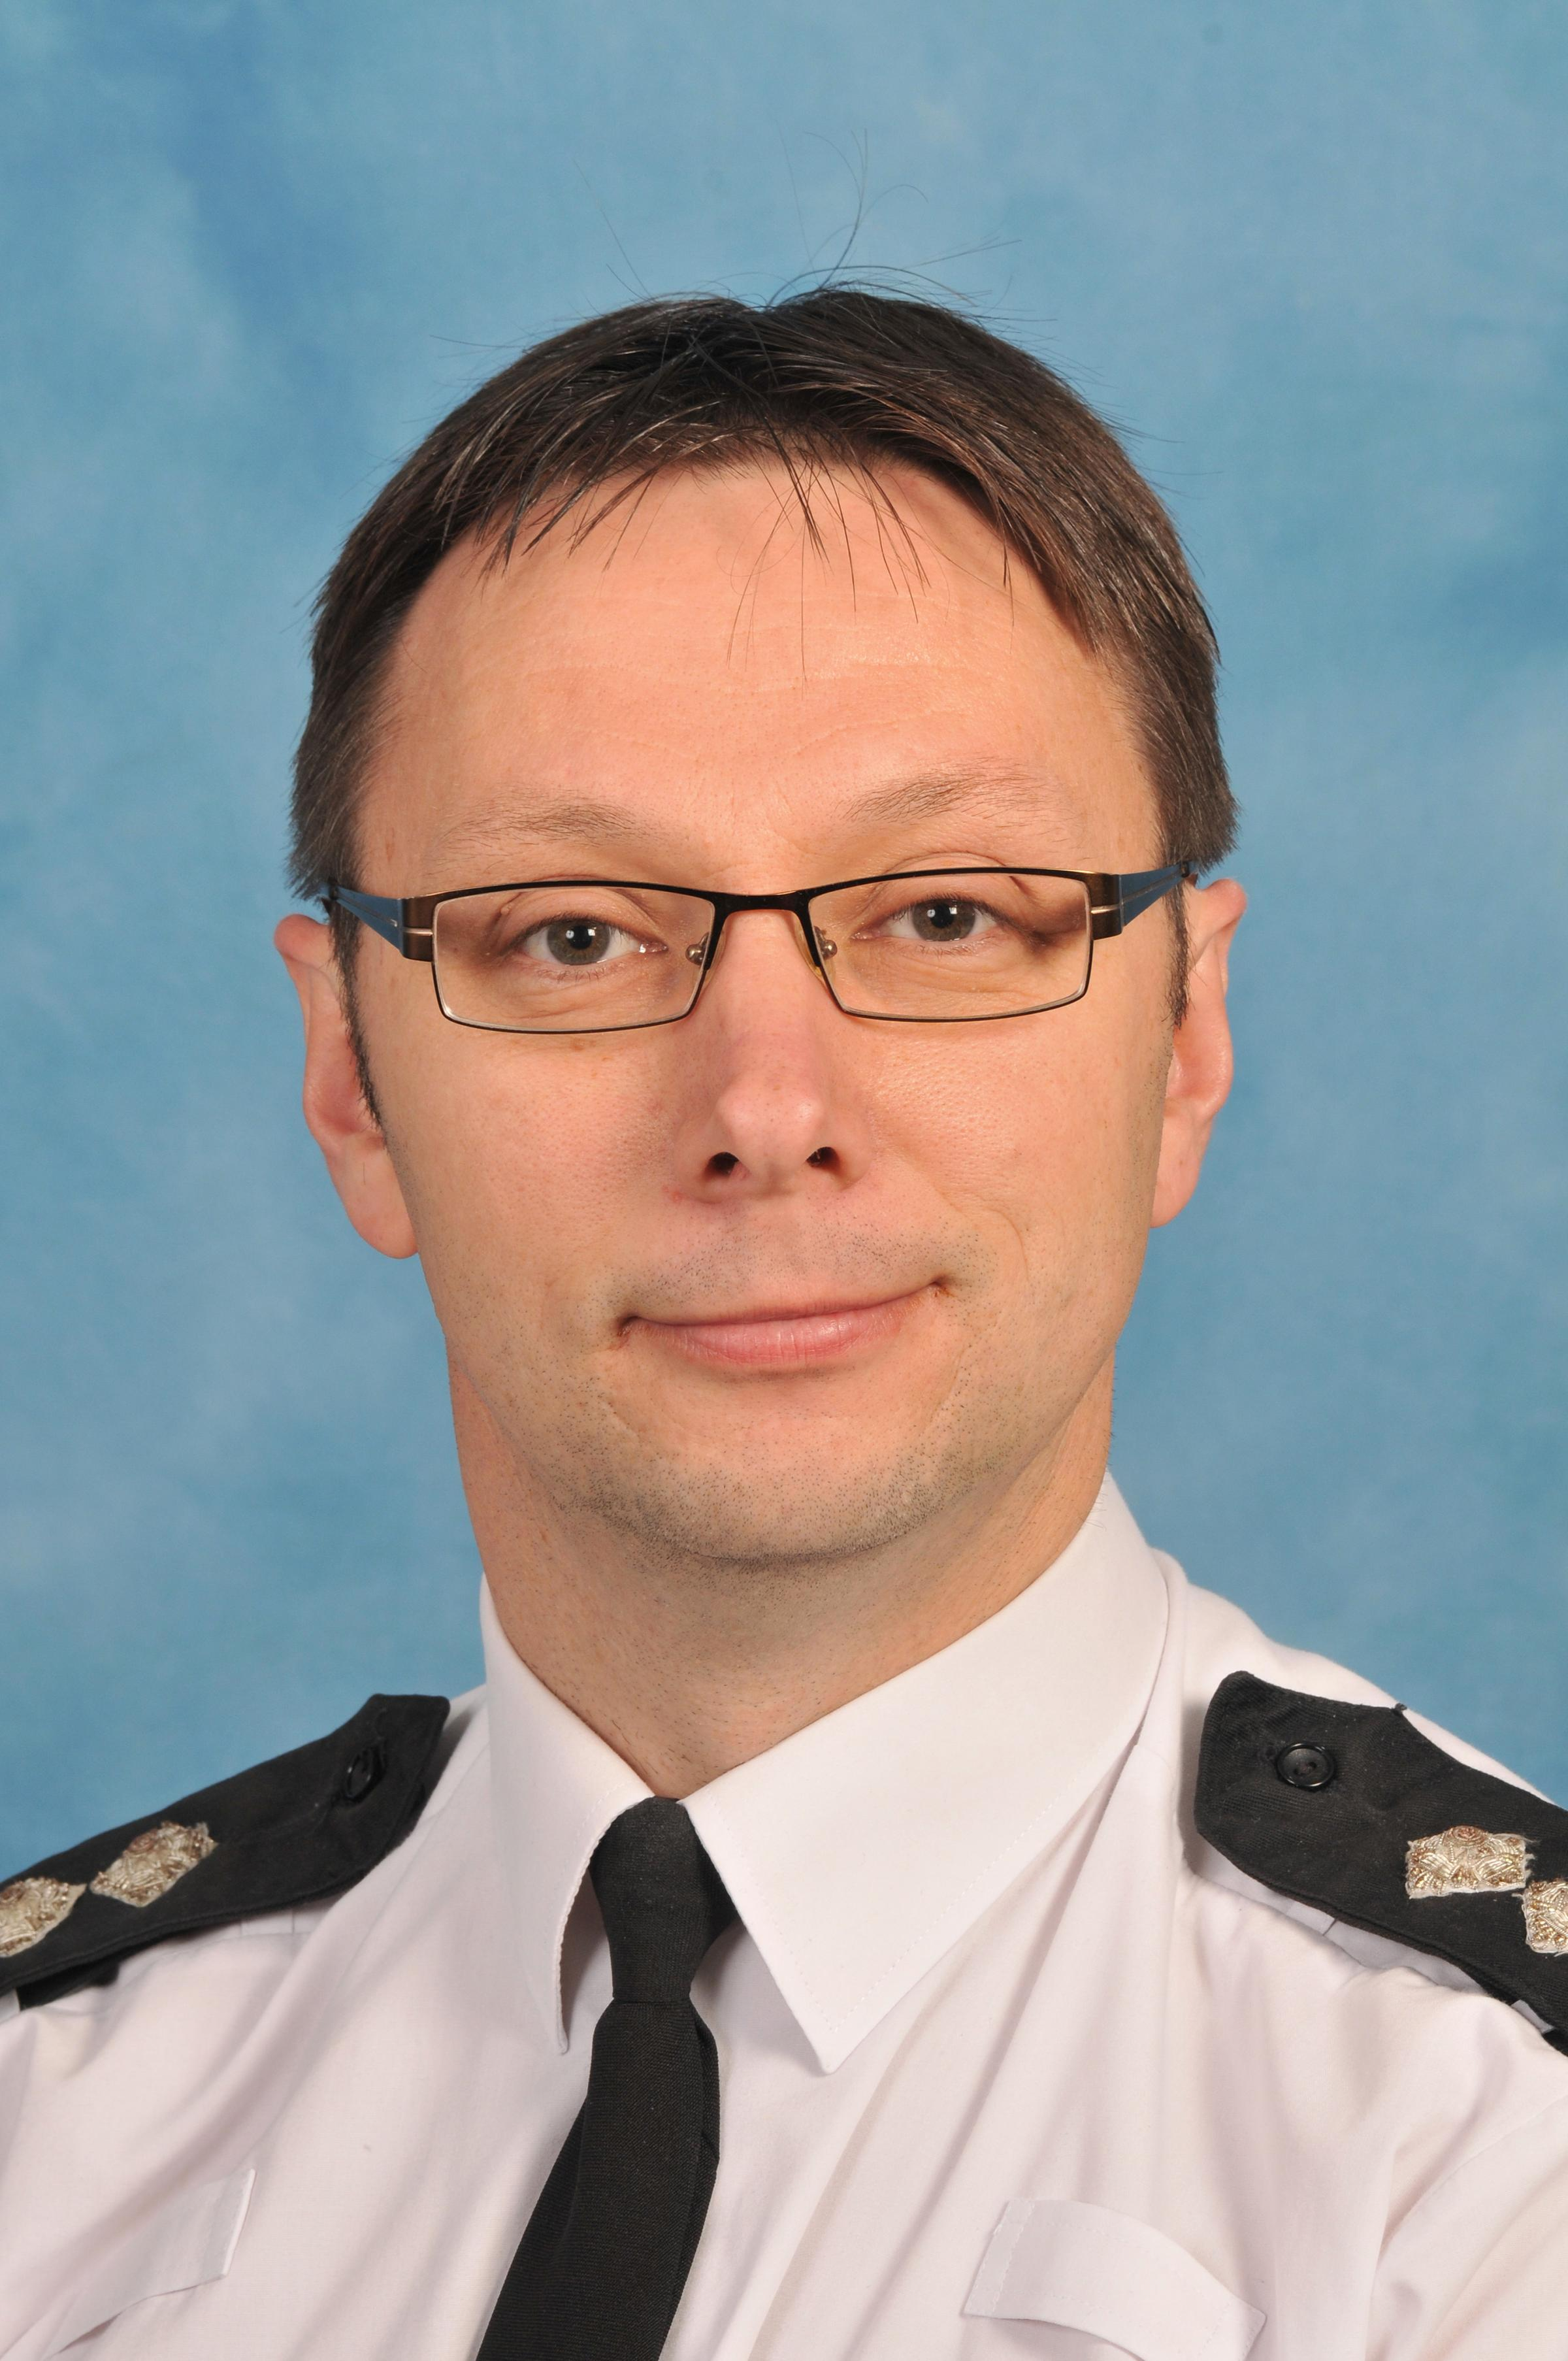 The new Neighbourhood Inspector for Sedgemoor Andy Pritchard has vowed to change people's perception of how safe Burnham is